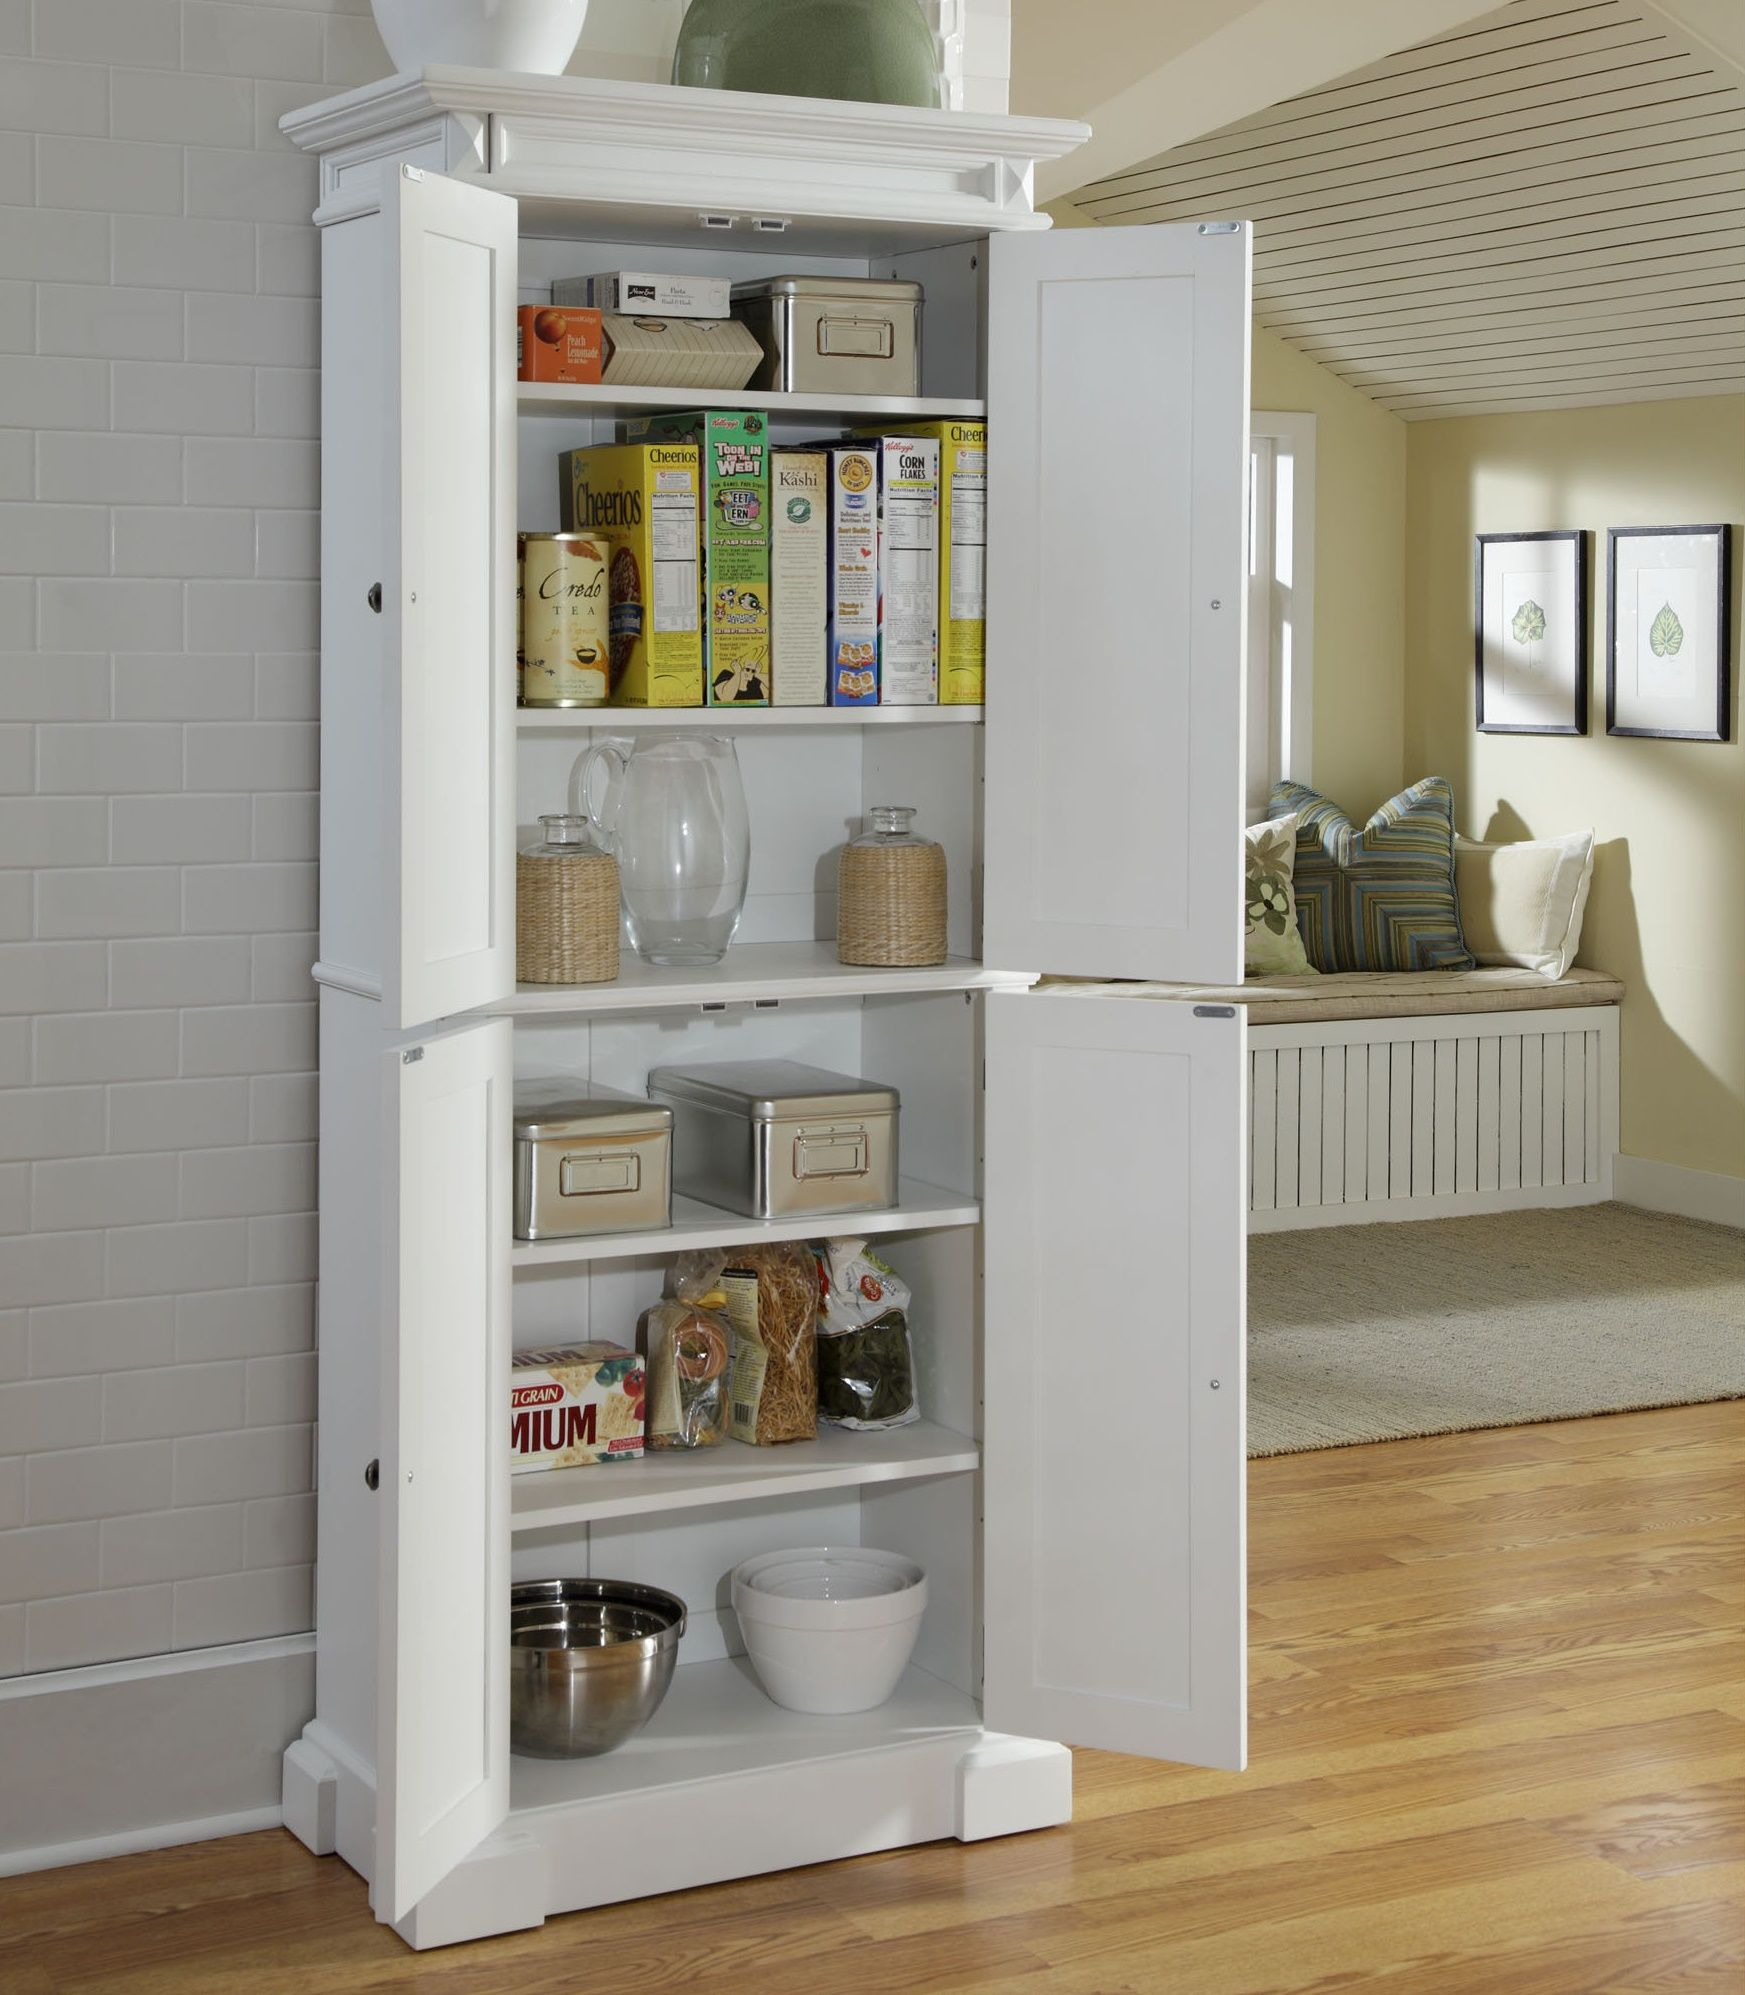 Lowes Bathroom Storage Shelves Kitchen Pantry Cabinet